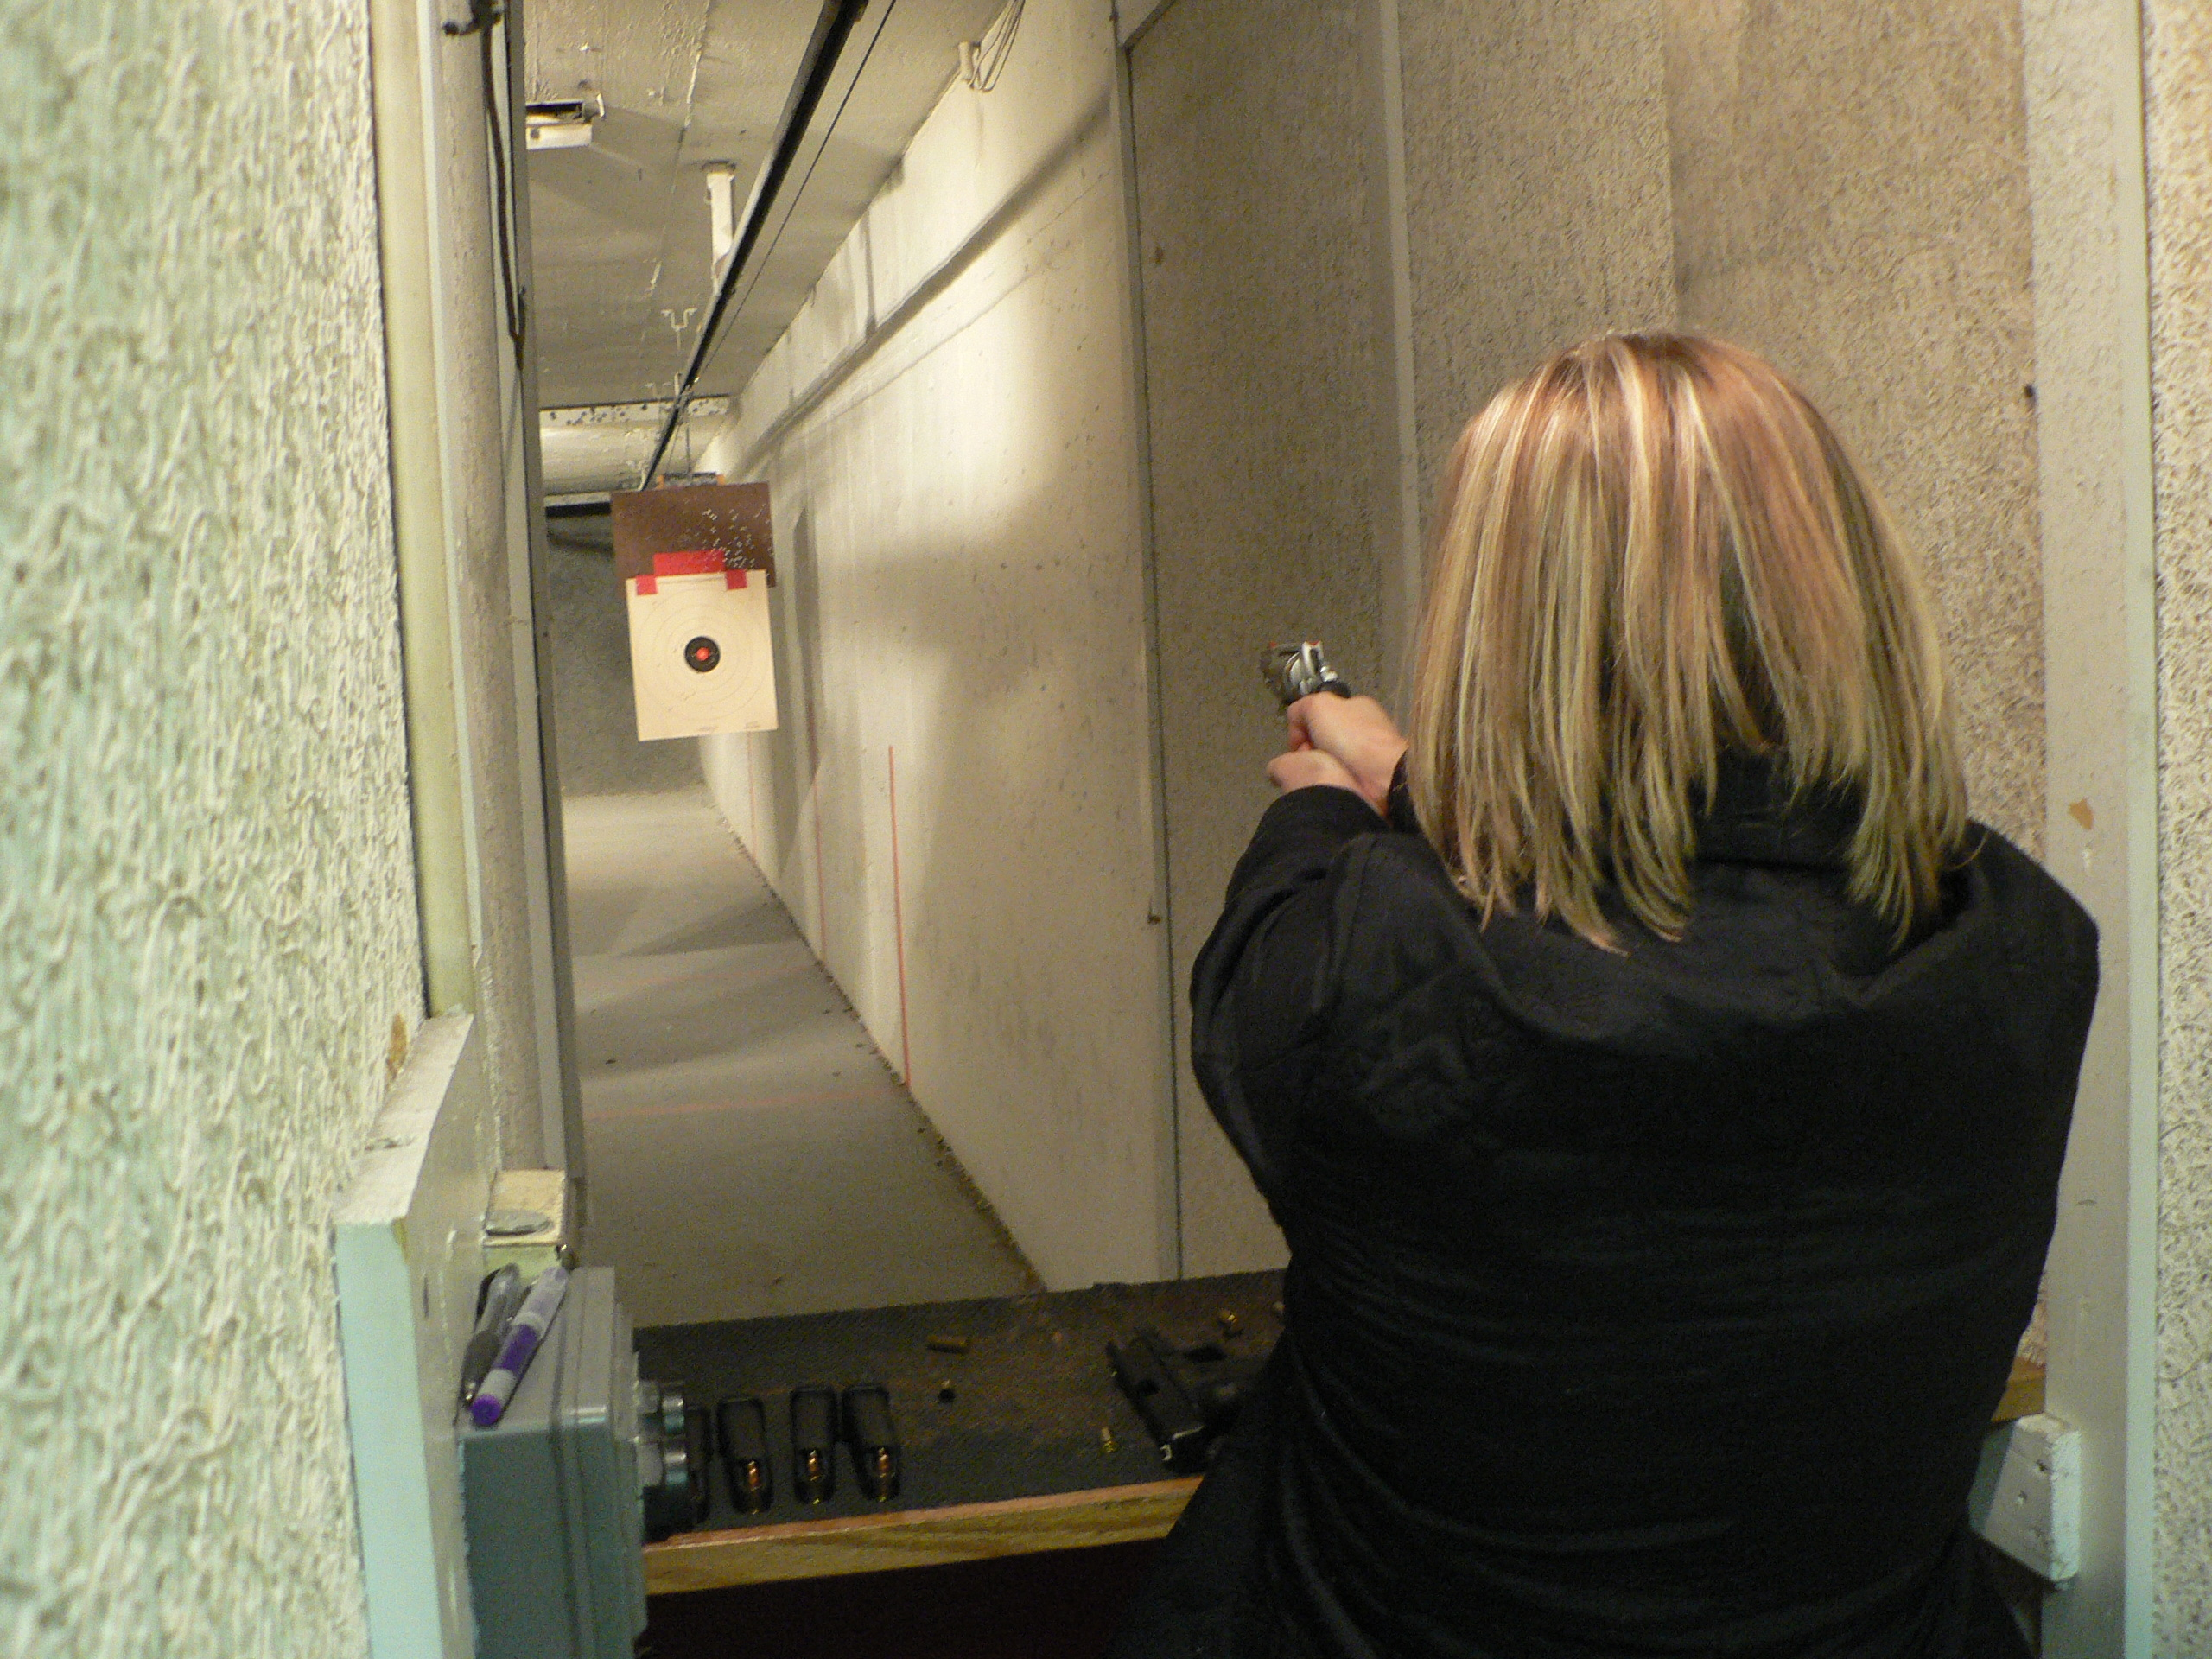 lead exposure is a concern for shooters—especially for mothers.